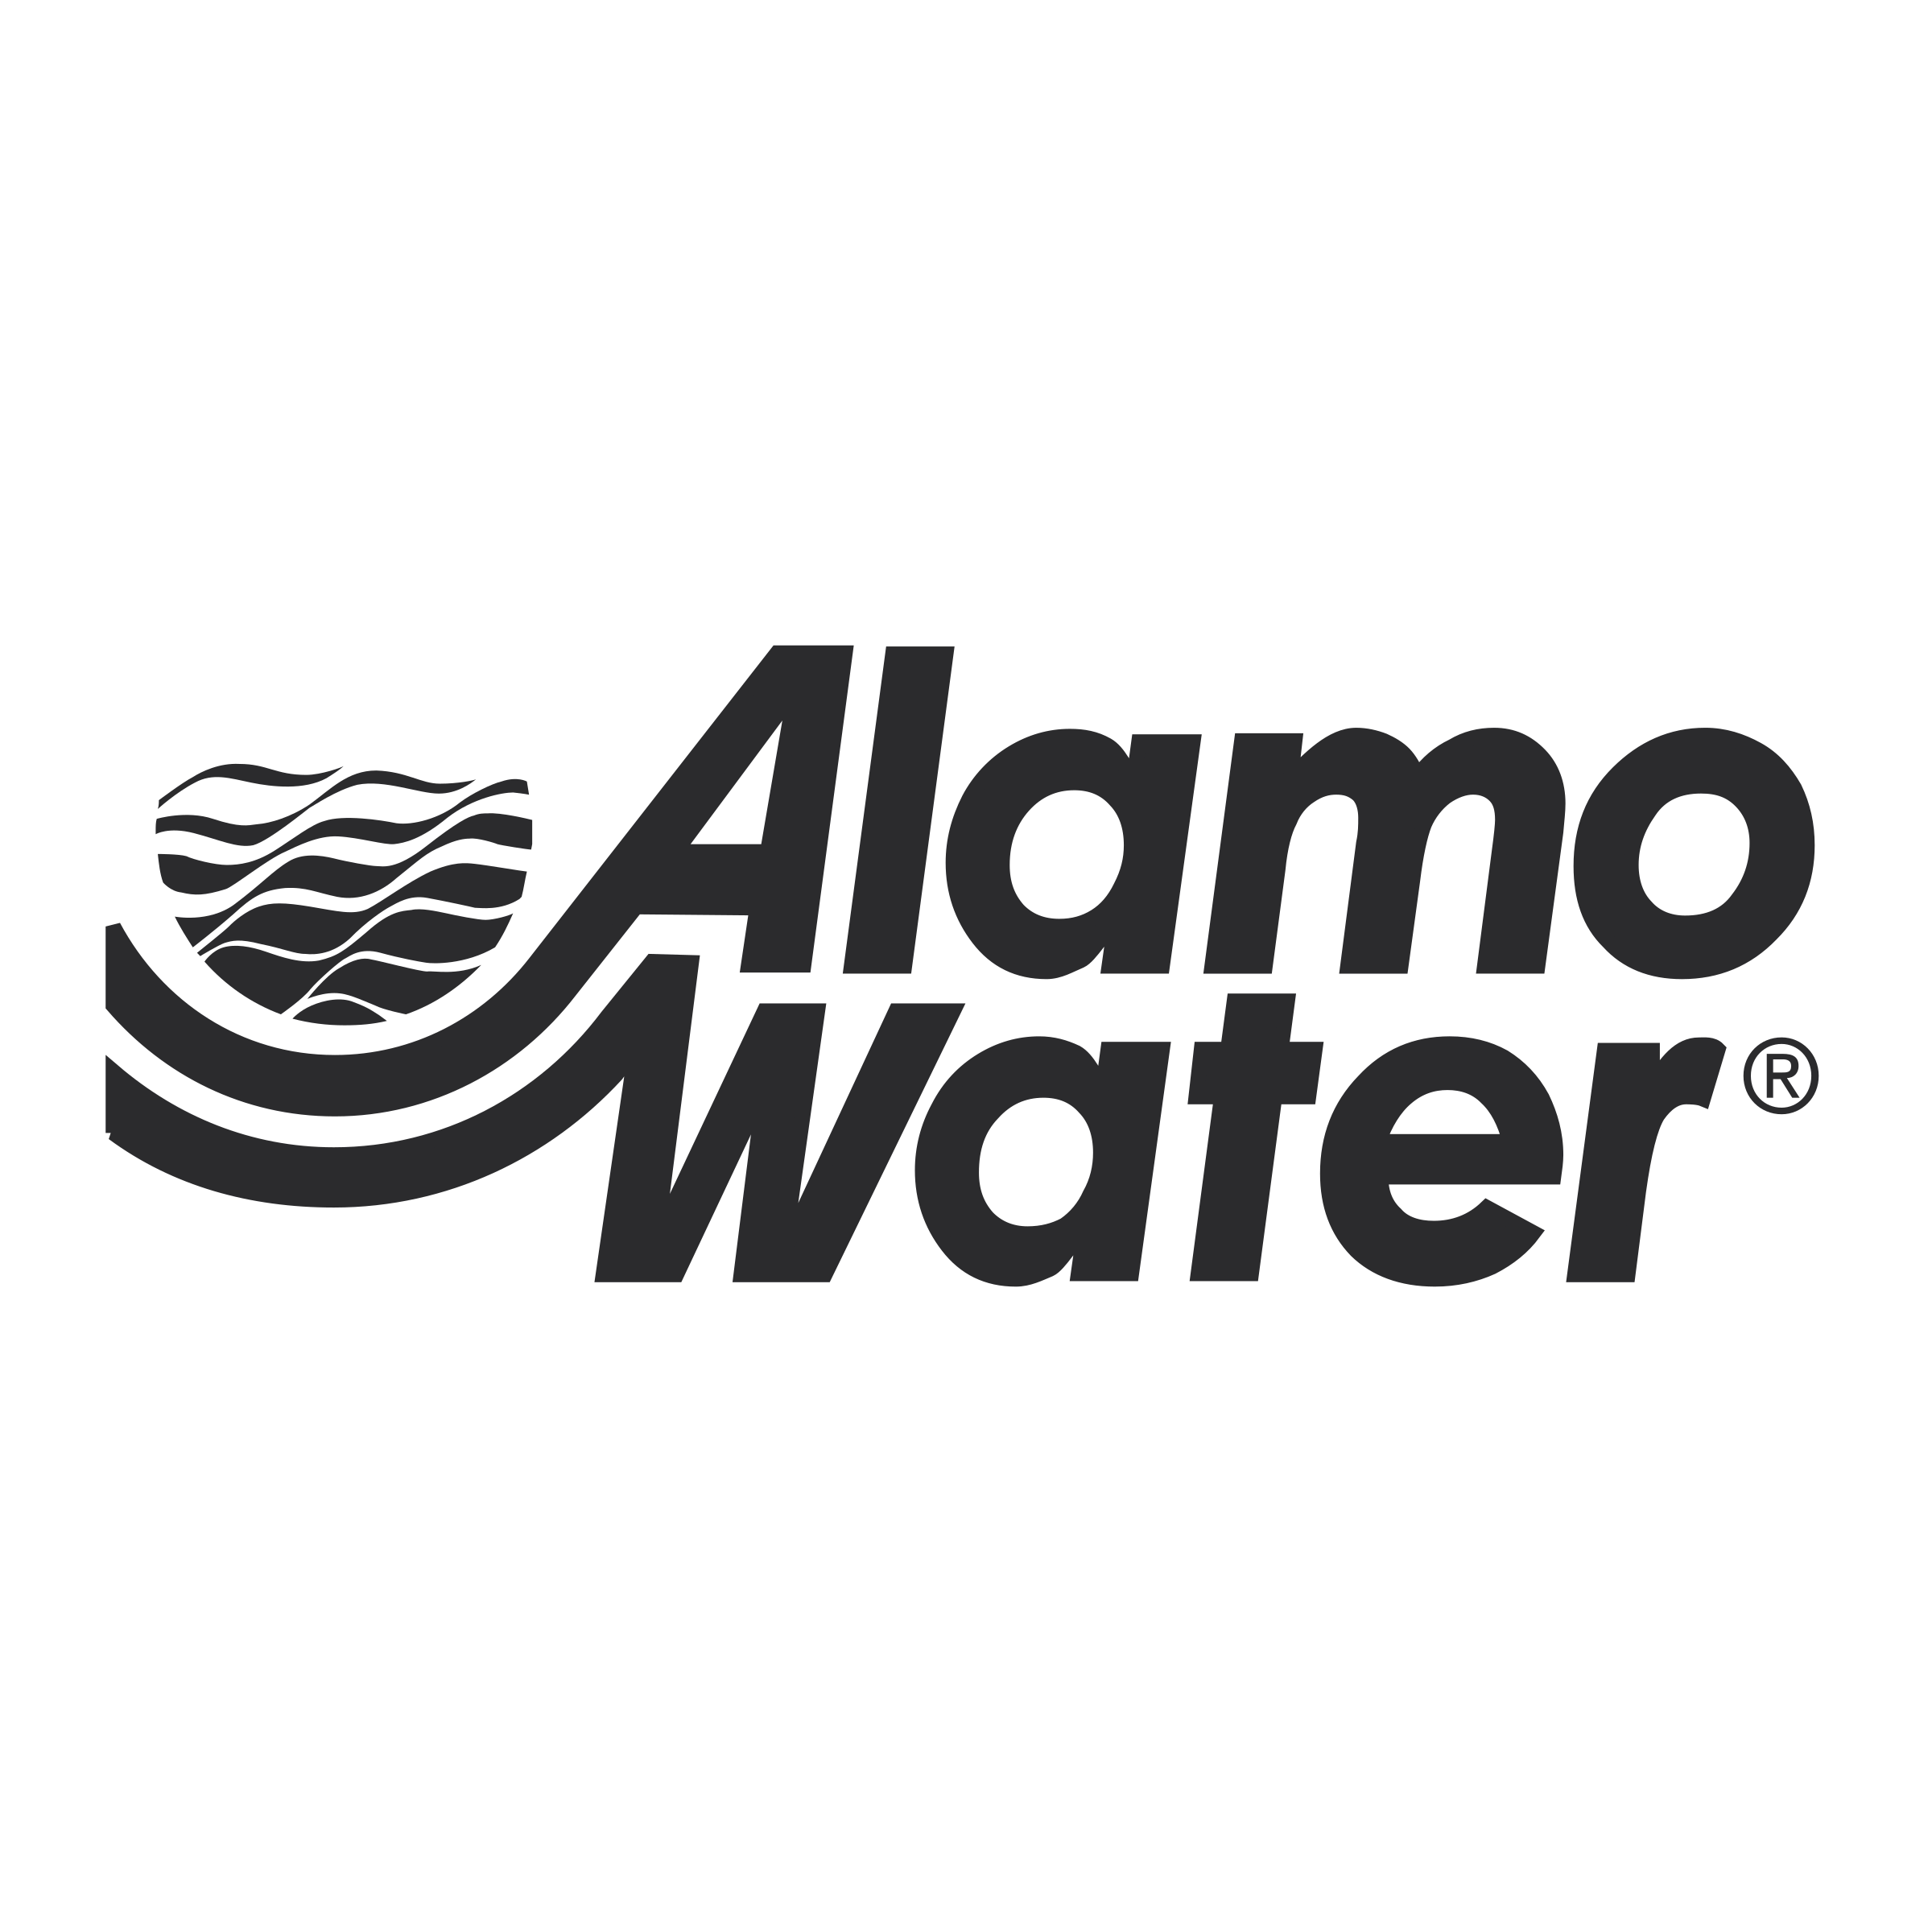 Alamo vector. Water logo png transparent